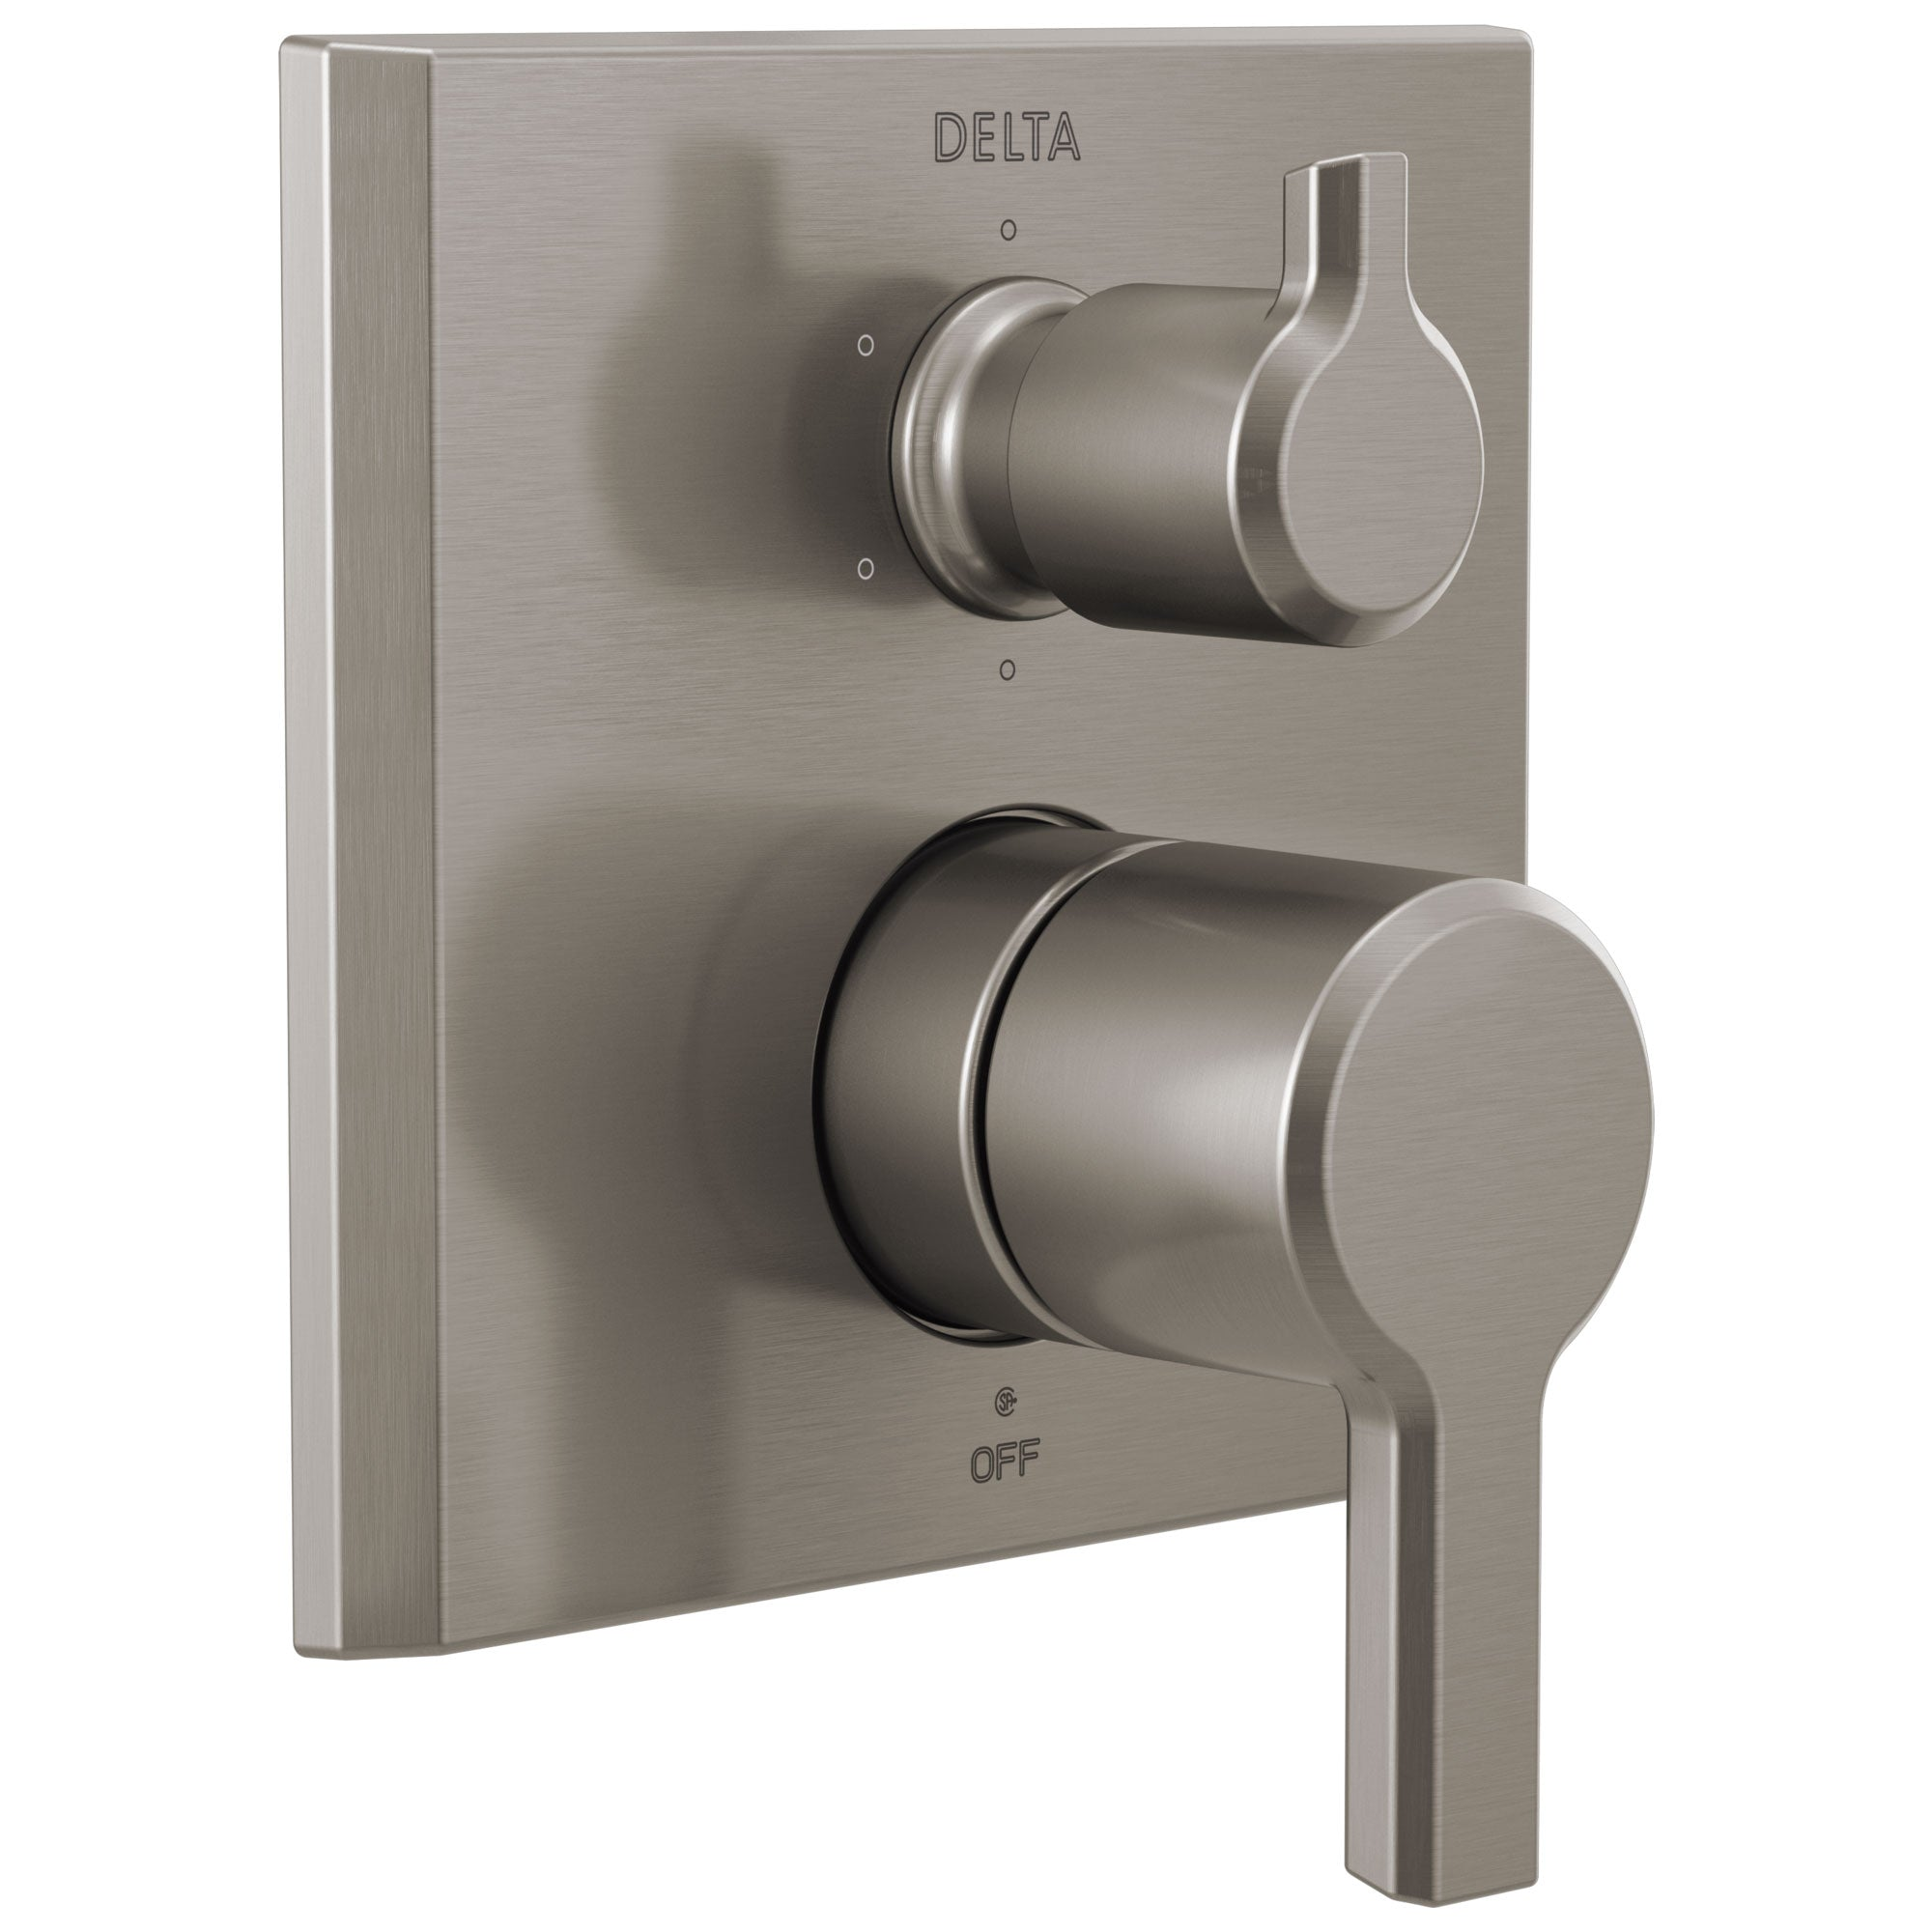 Delta Pivotal Stainless Steel Finish 14 Series Integrated 6 Function Diverter Shower Control Trim Kit (Requires Valve) DT24999SS